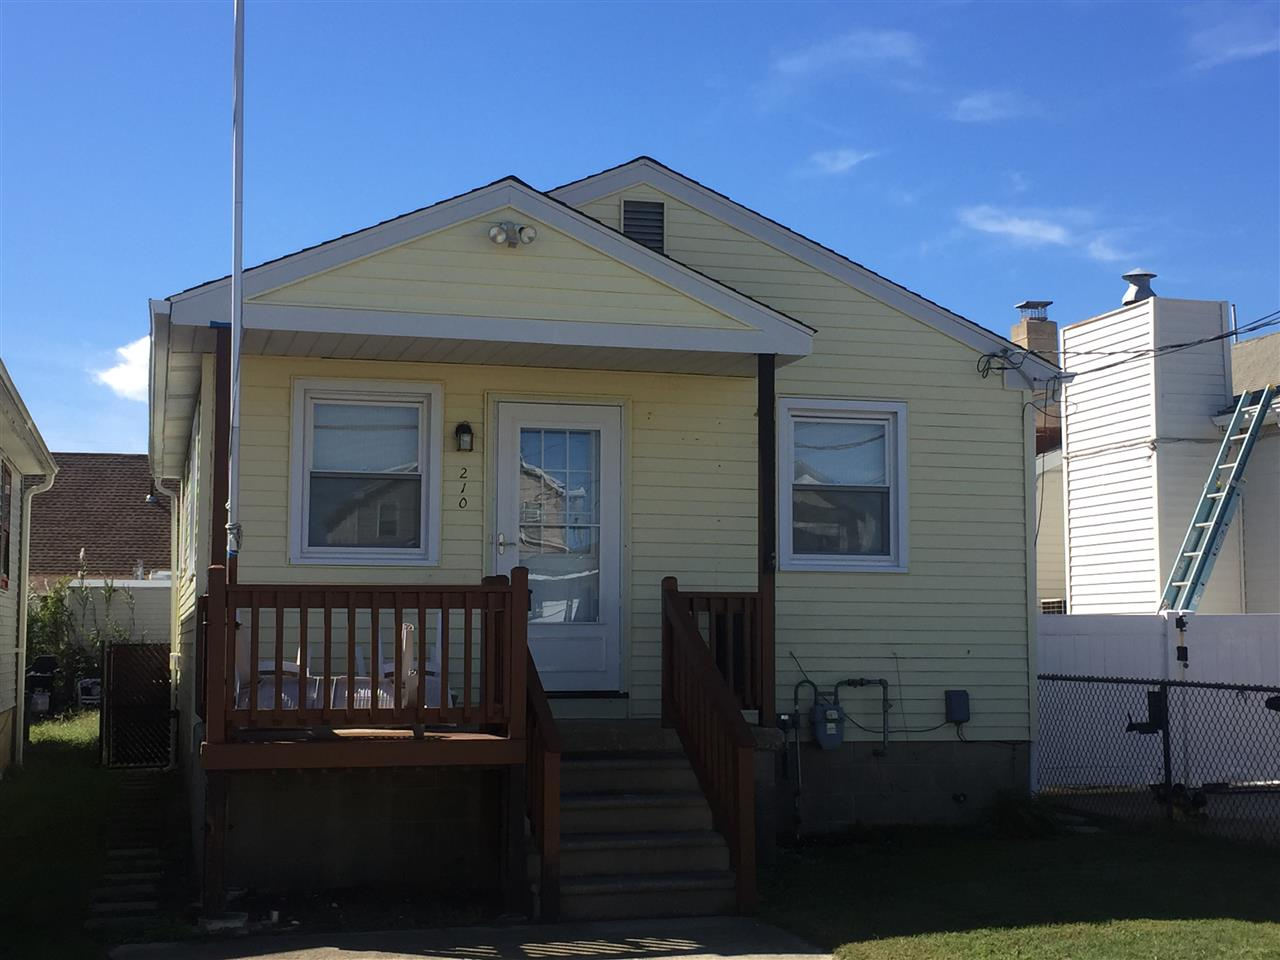 210 W Chestnut Ave, North Wildwood, NJ 08260